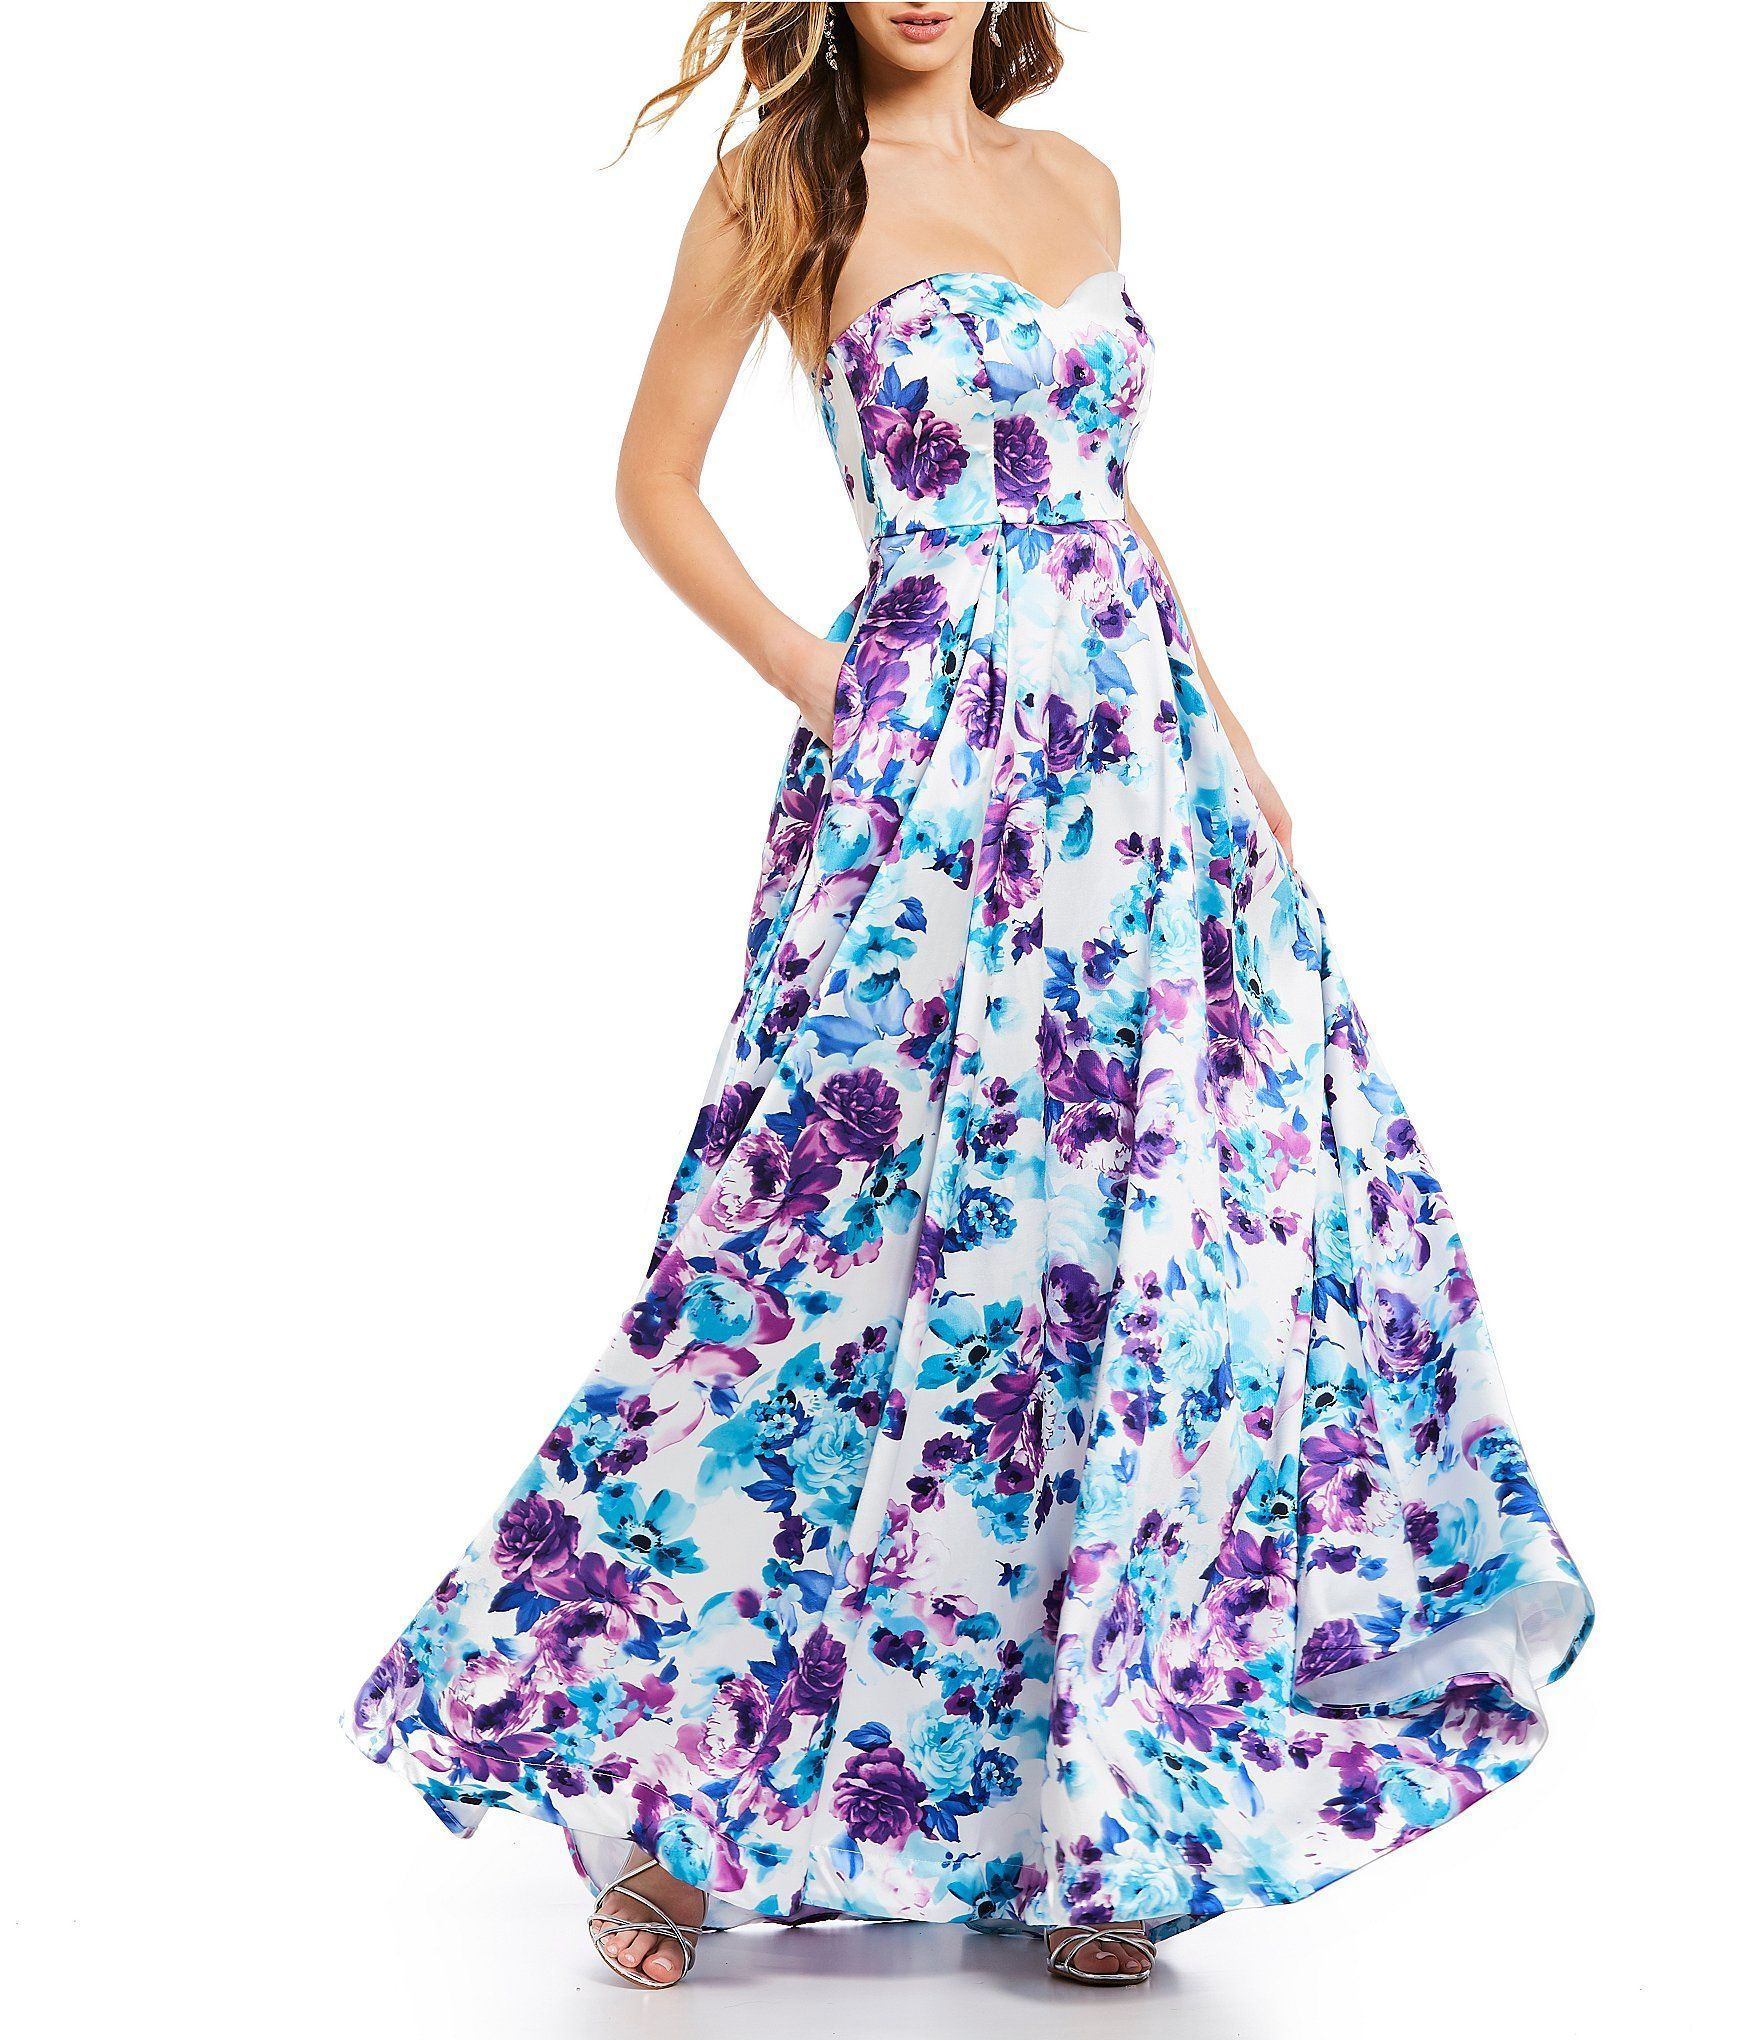 Shop for b darlin strapless sweetheart neckline floral ball gown at